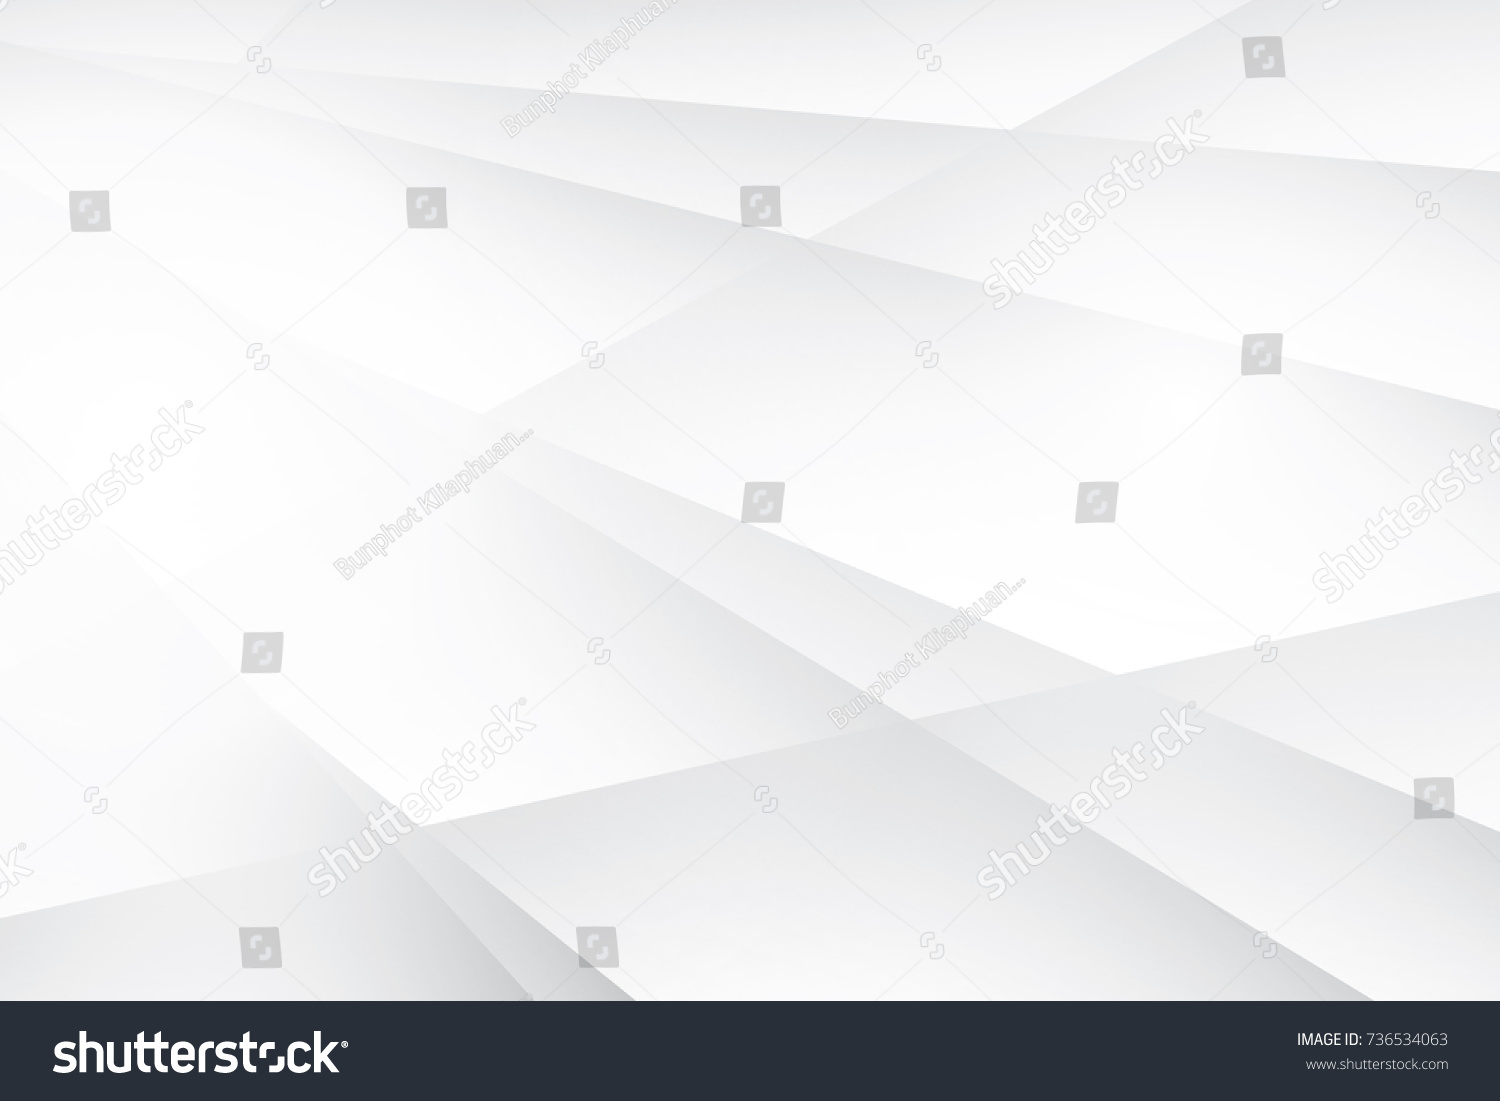 Abstract geometric white and gray color background, vector illustration. #736534063